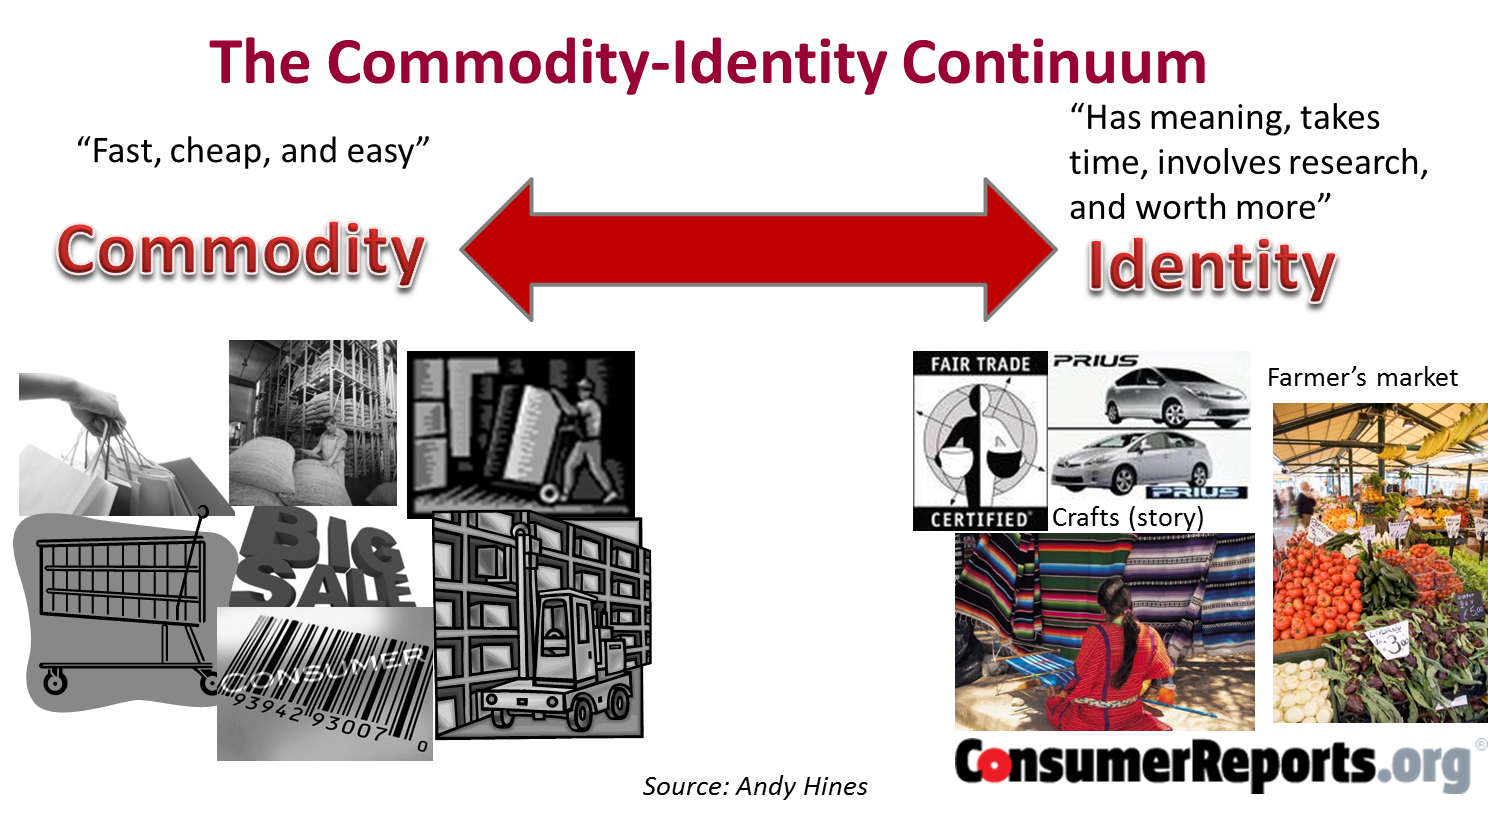 Commodity identity continuum